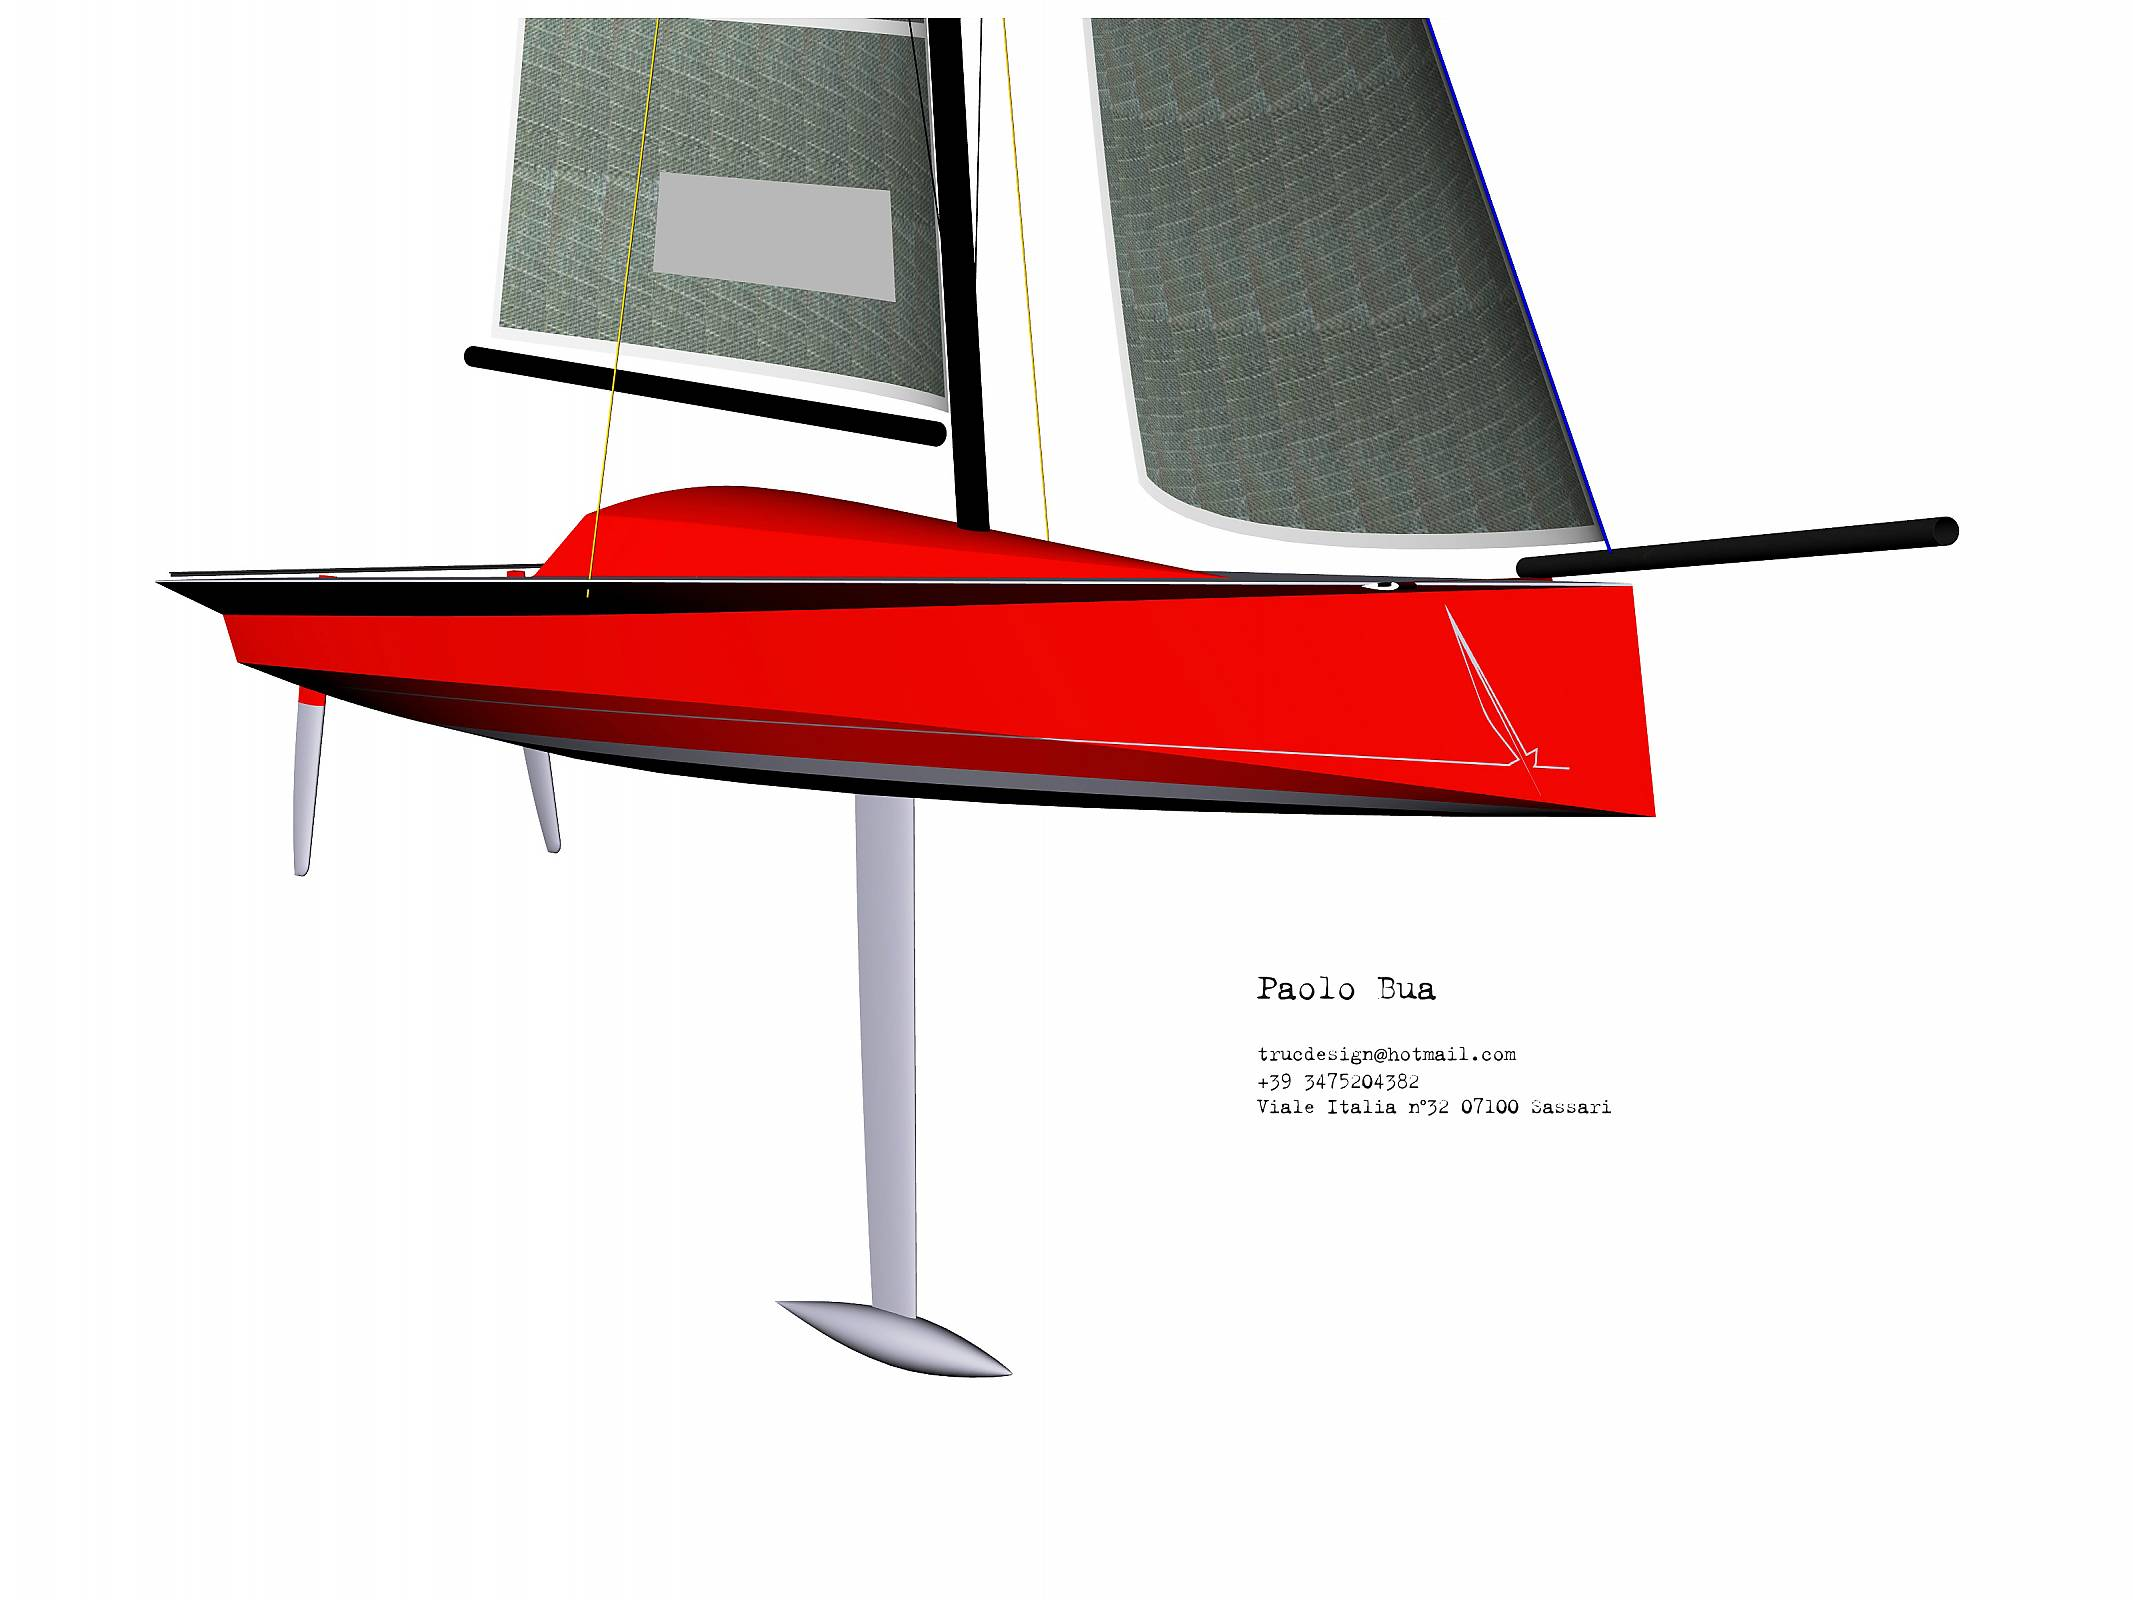 ultimate 20 to 26' bouy racer | Page 3 | Boat Design Net